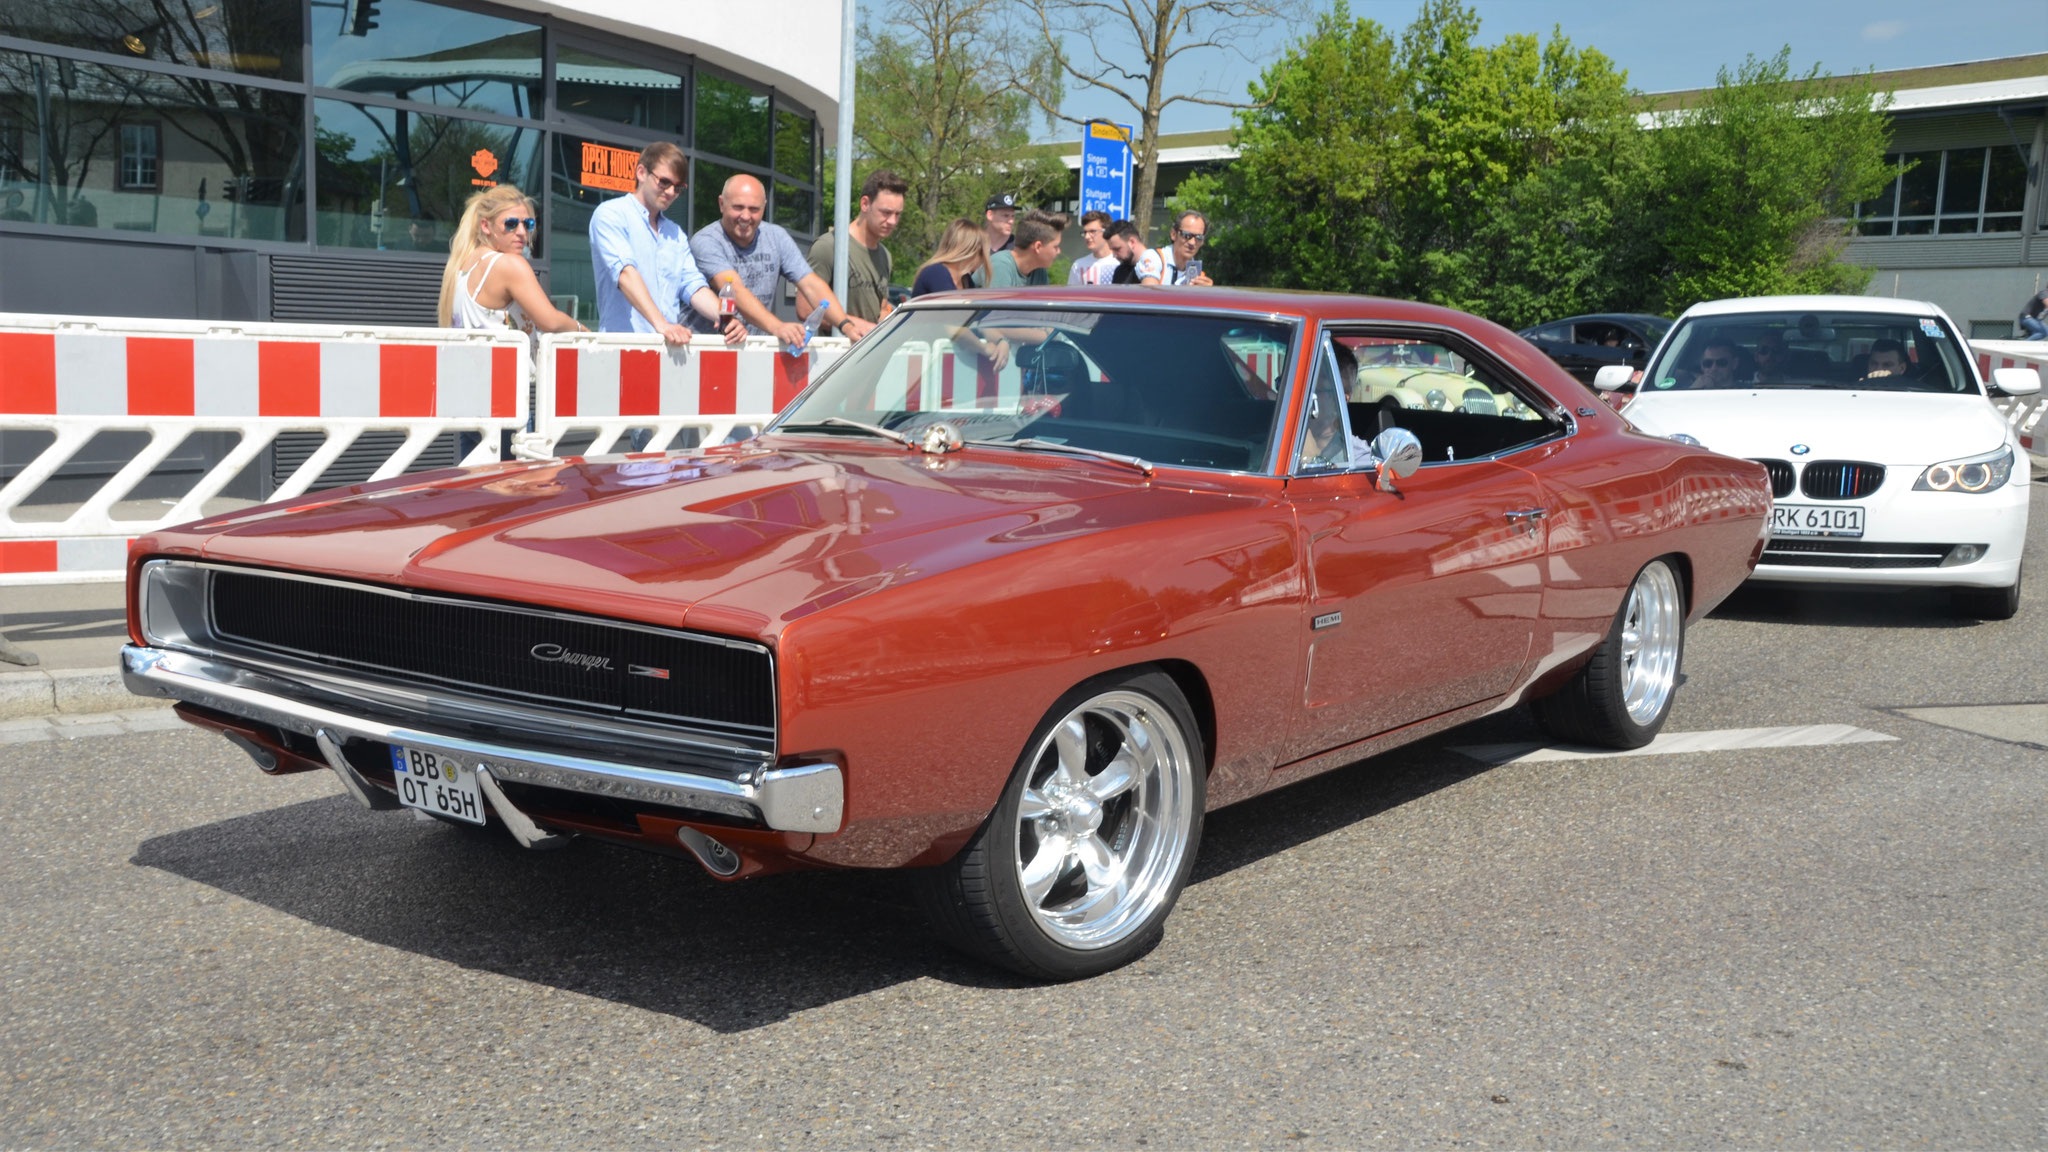 Dodge Charger Hemi - BB-OT-65H